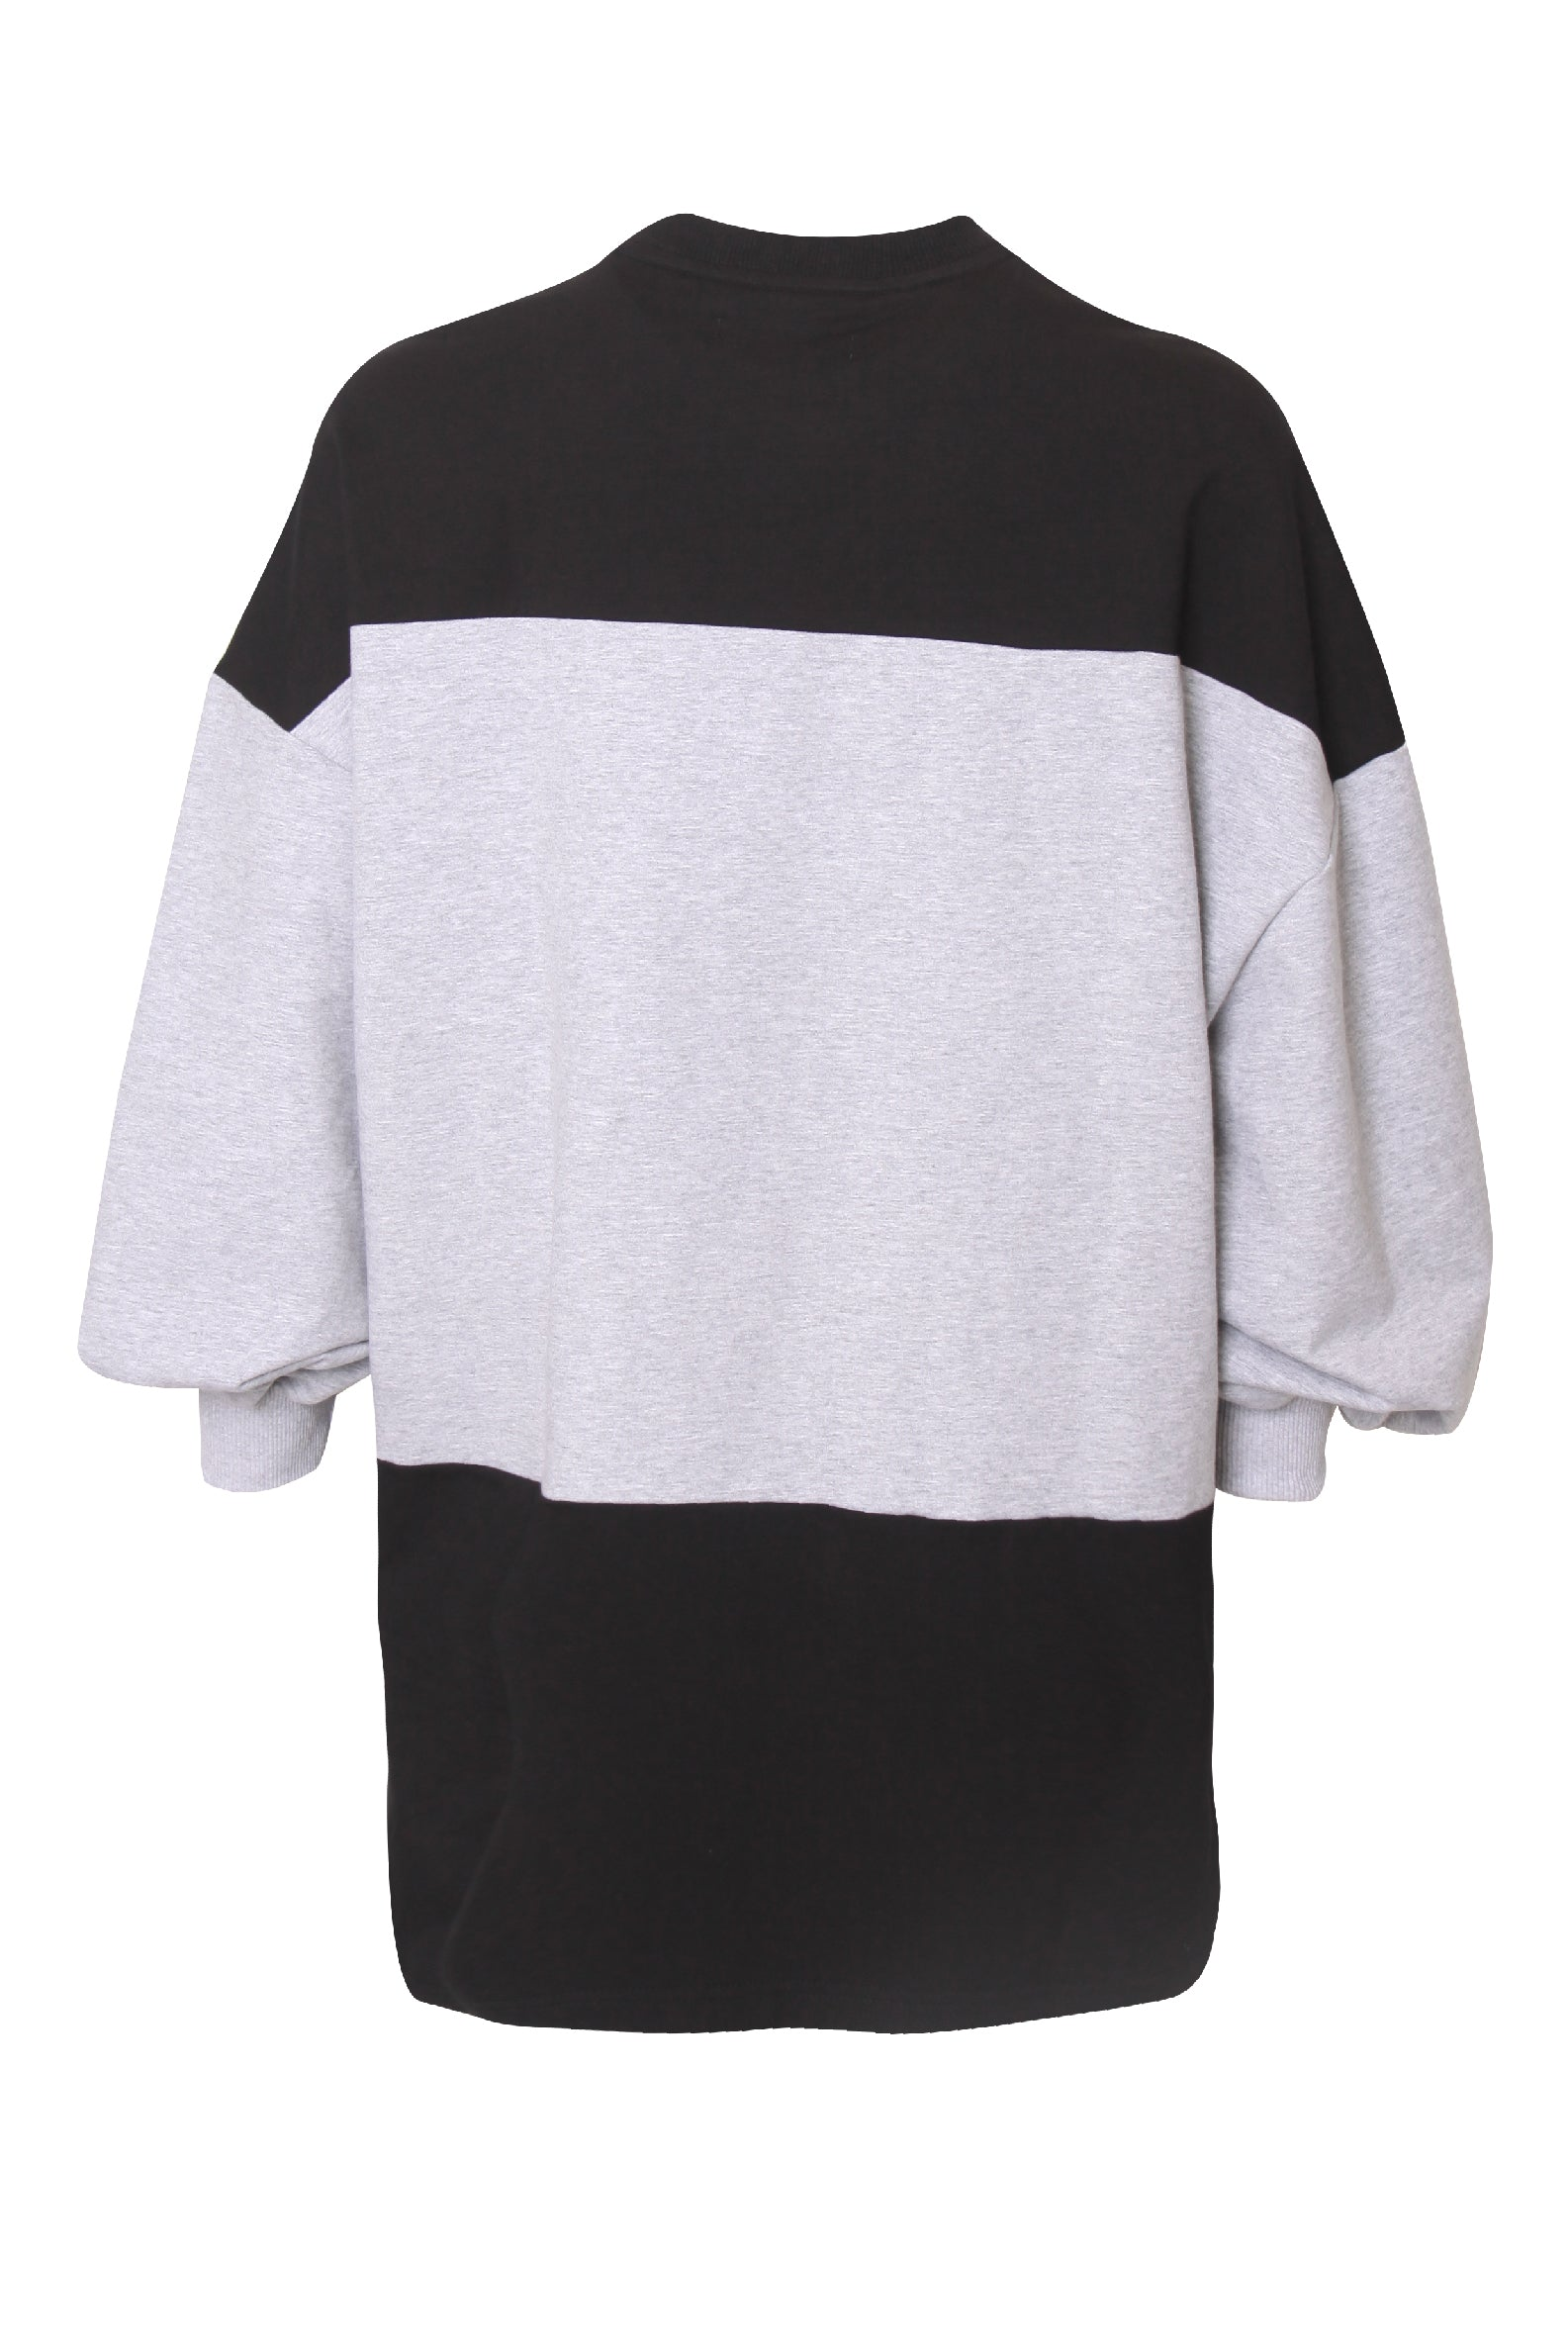 Abstract Pattern  Colourblock  Tunic